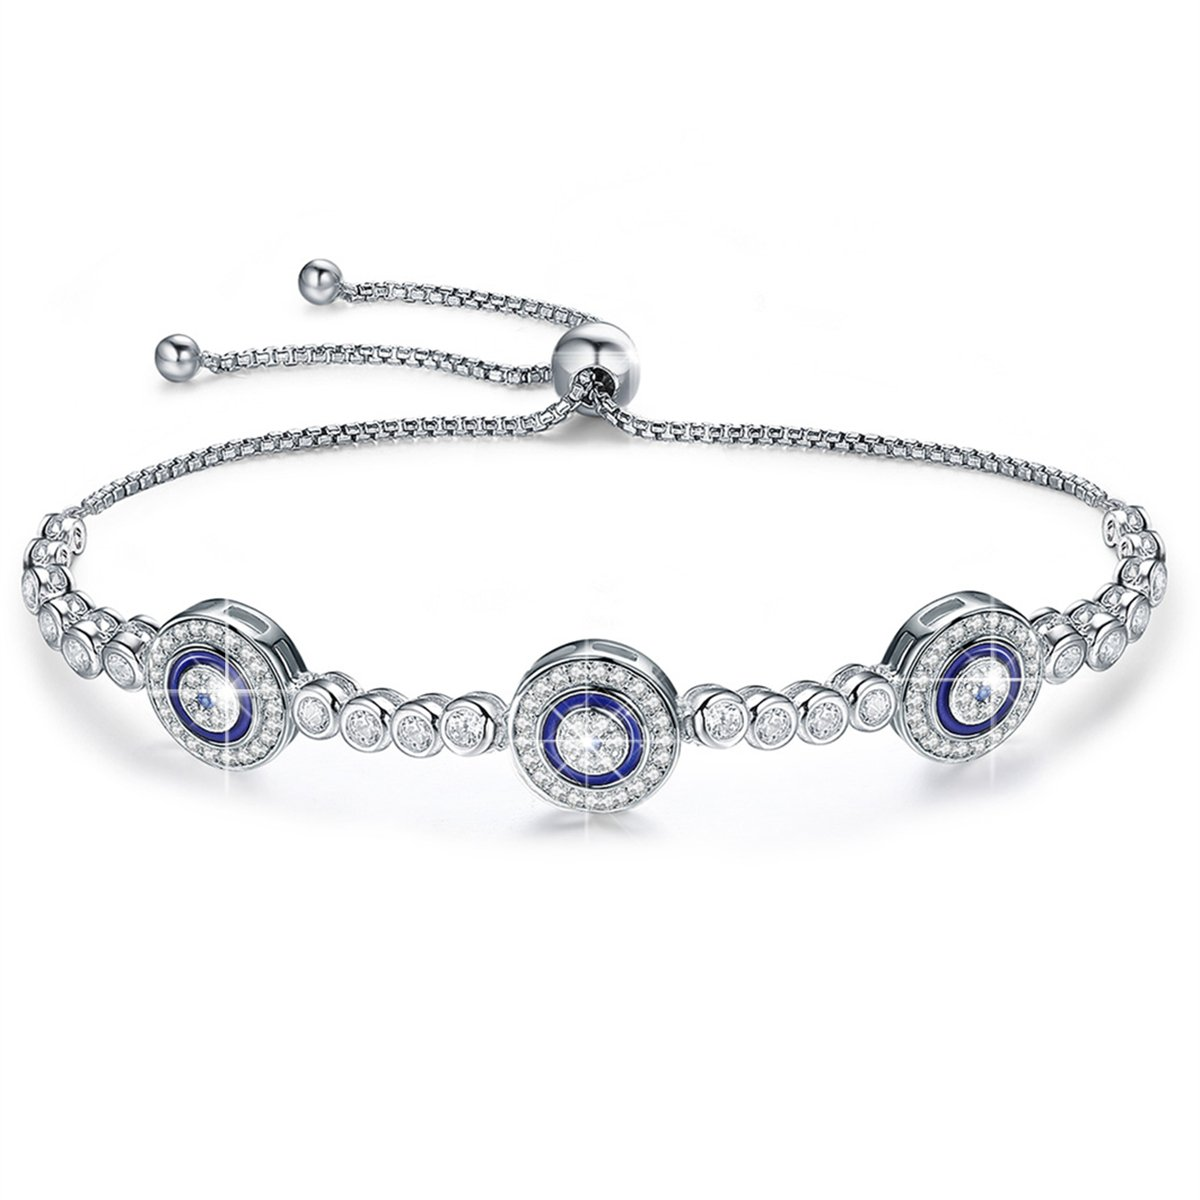 BAMOER 925 Sterling Silver Expandable Lucky Blue Evil Eye Chain Bracelet With Sparkling Cubic Zirconia for Women Girls Style 4